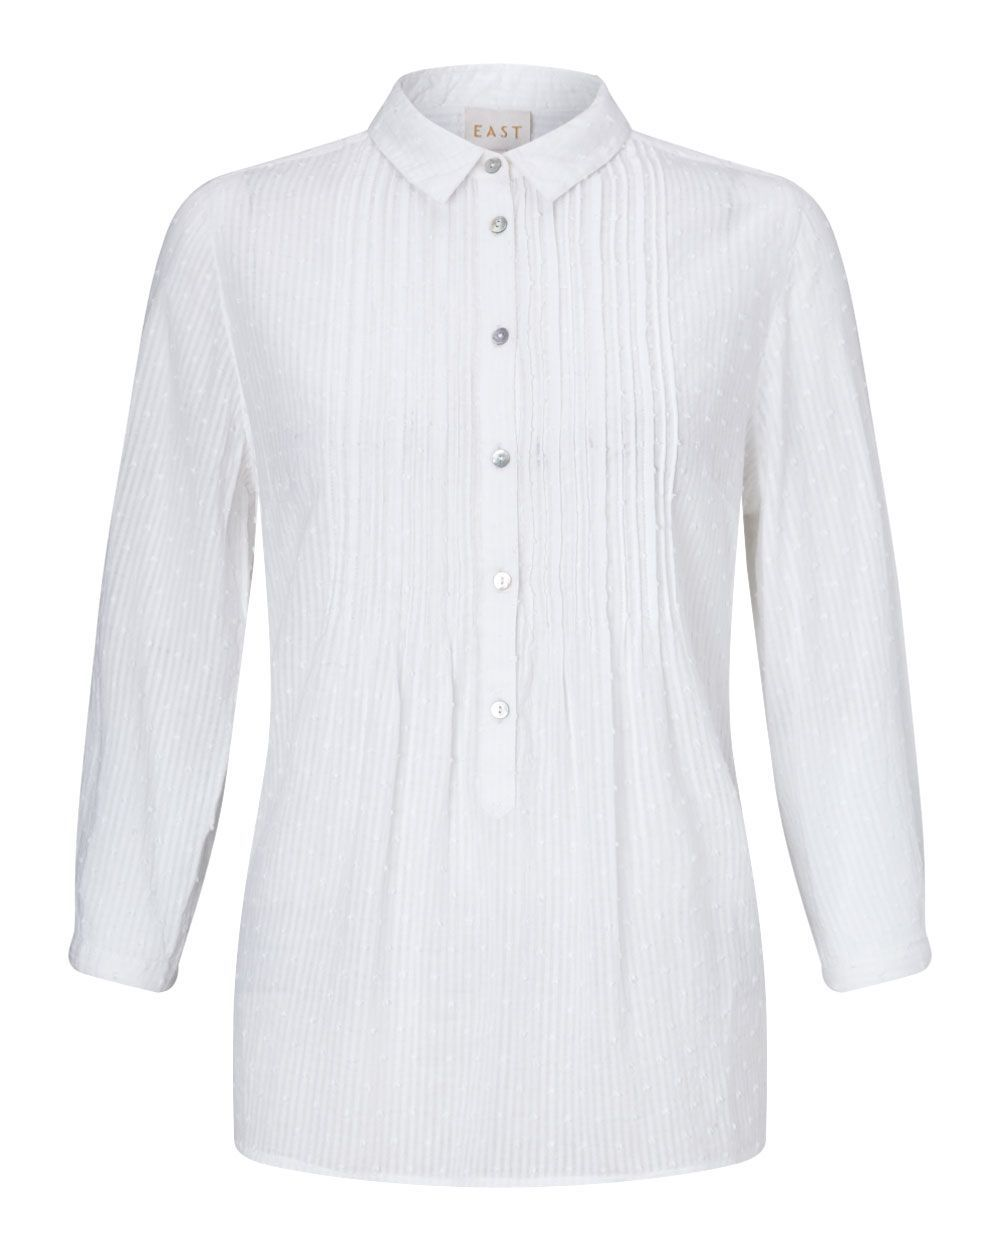 Pintuck Dobby Shirt, Winter White - neckline: shirt collar/peter pan/zip with opening; pattern: plain; style: shirt; bust detail: ruching/gathering/draping/layers/pintuck pleats at bust; predominant colour: white; occasions: casual; length: standard; fibres: cotton - 100%; fit: body skimming; sleeve length: 3/4 length; sleeve style: standard; texture group: cotton feel fabrics; pattern type: fabric; season: a/w 2015; wardrobe: basic